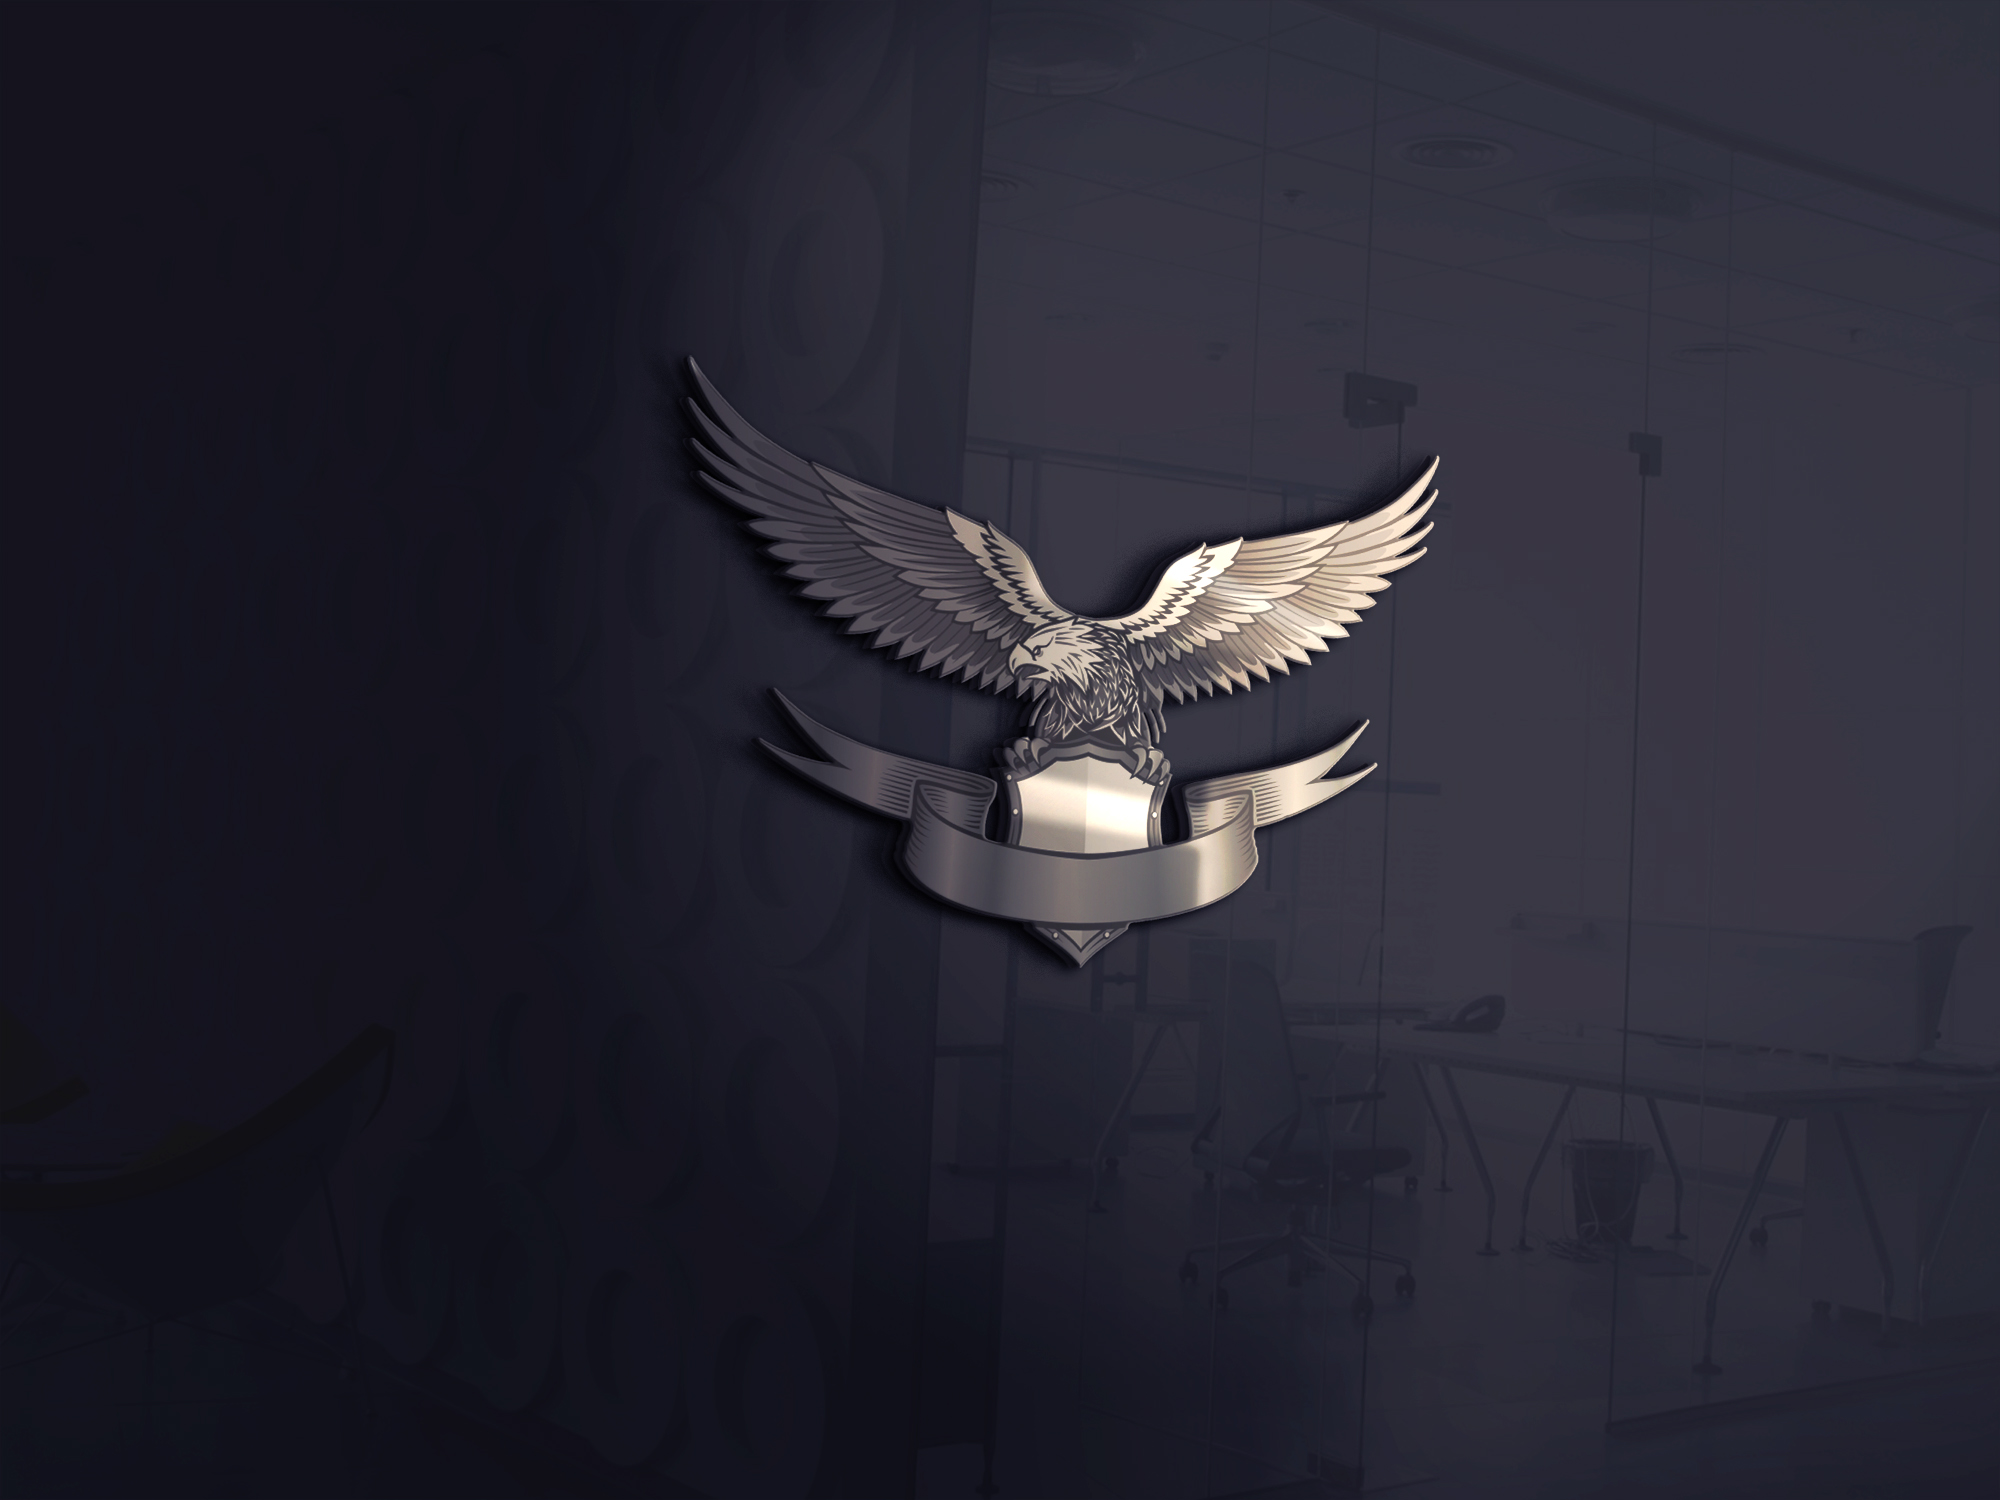 I will create a realistic 3D mockup with your logo or design 5 image